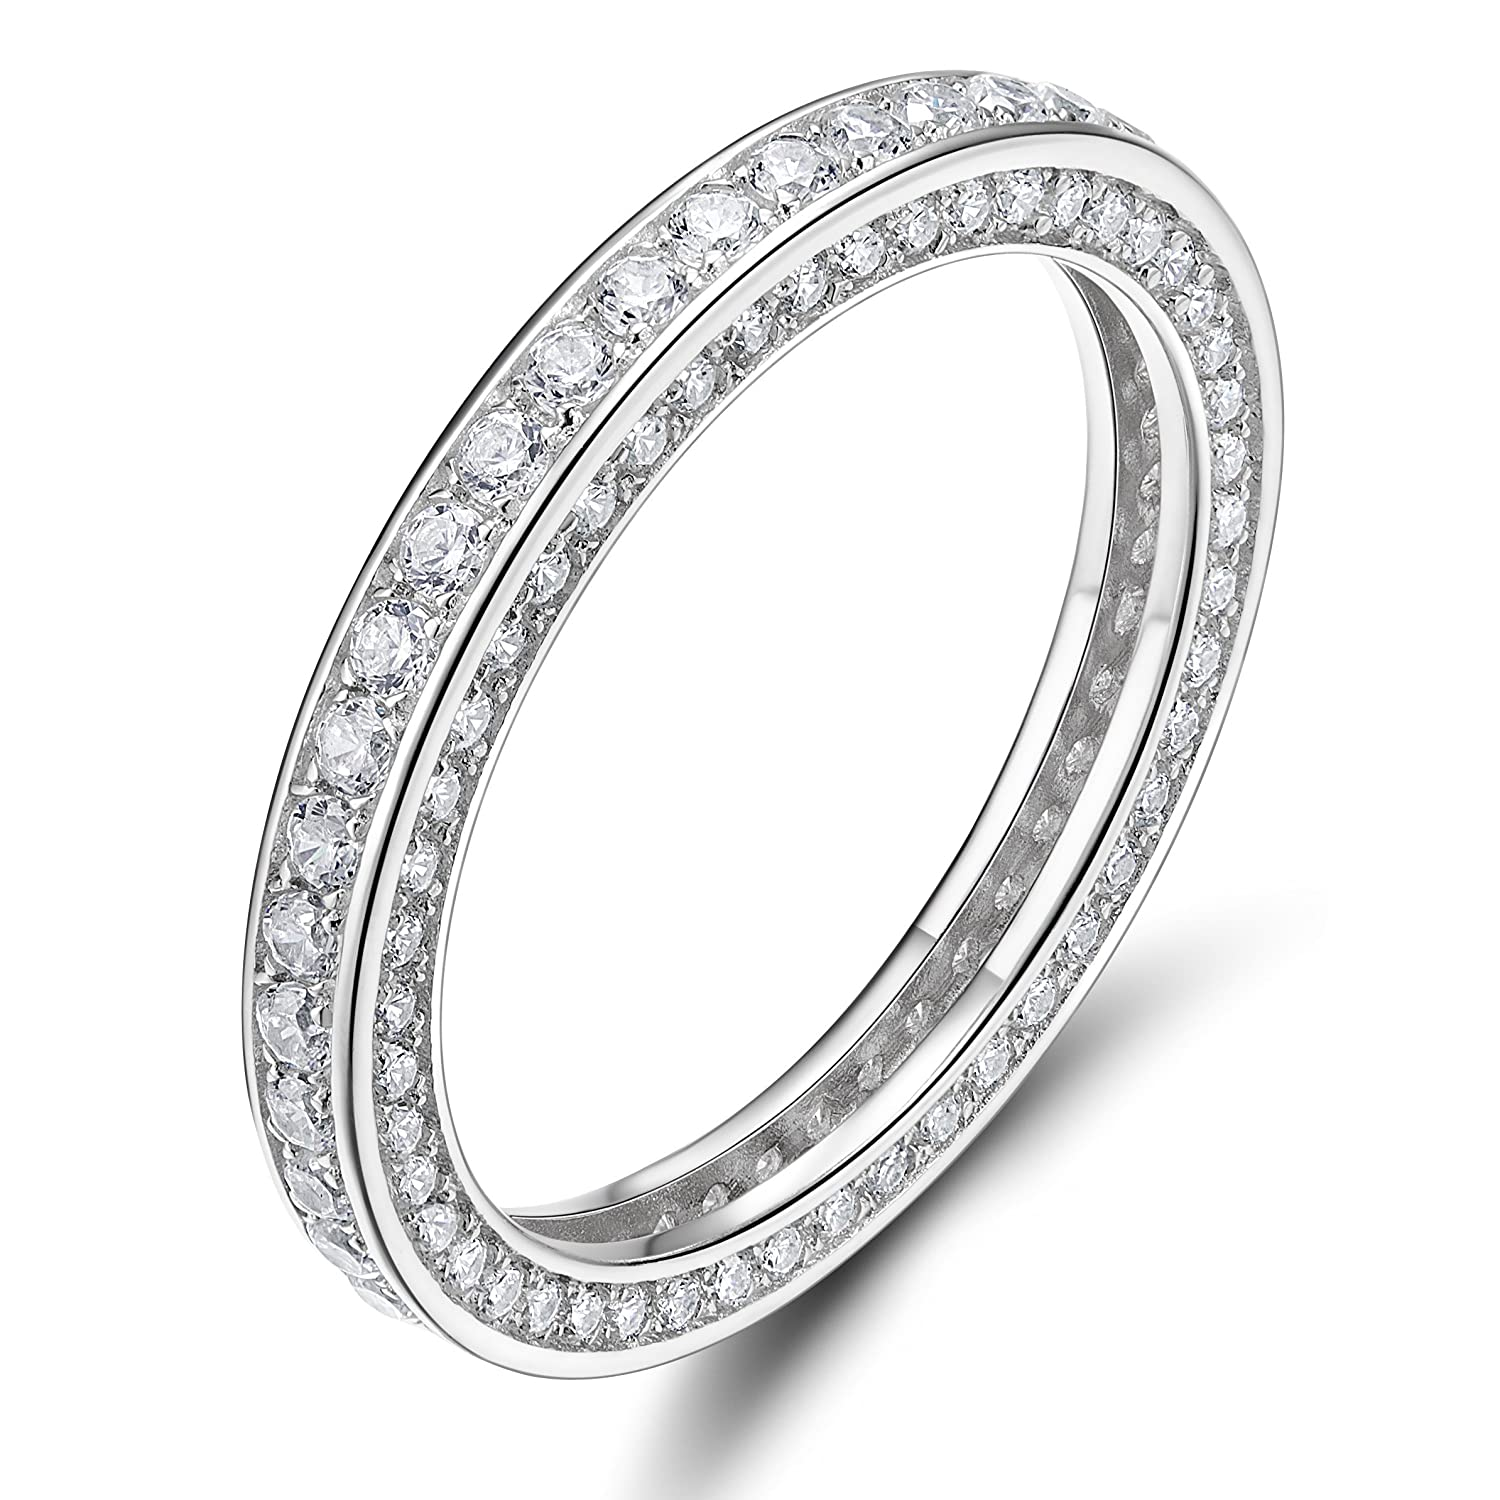 3MM 925 Sterling Silver Rings Cubic Zirconia Eternity Engagement Wedding Band Size 4-10 EAMTI